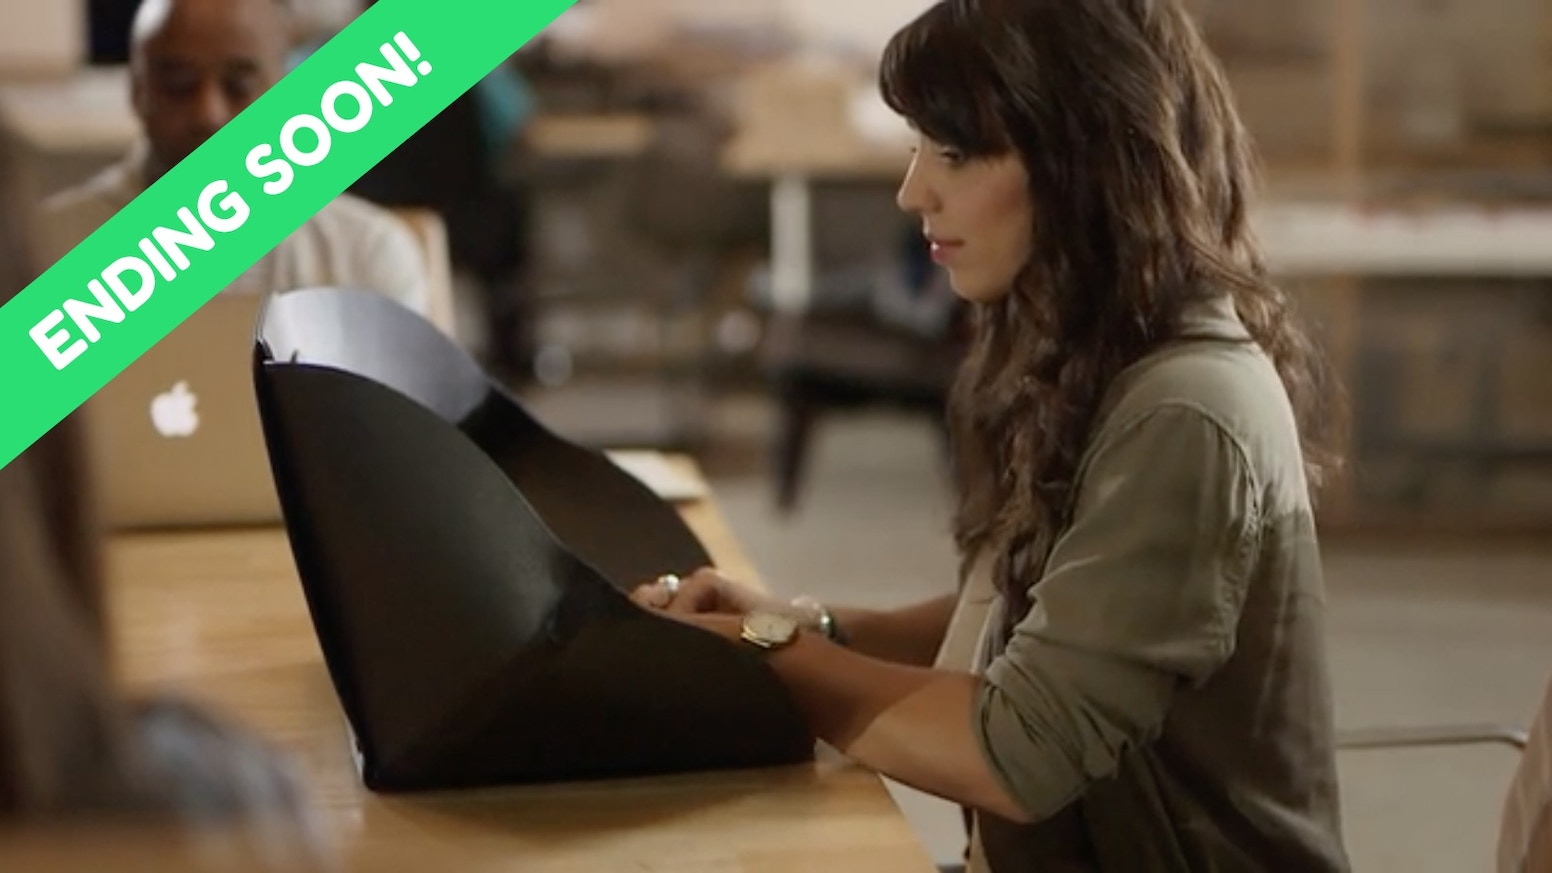 Transform your personal space into a private workstation, instantly.